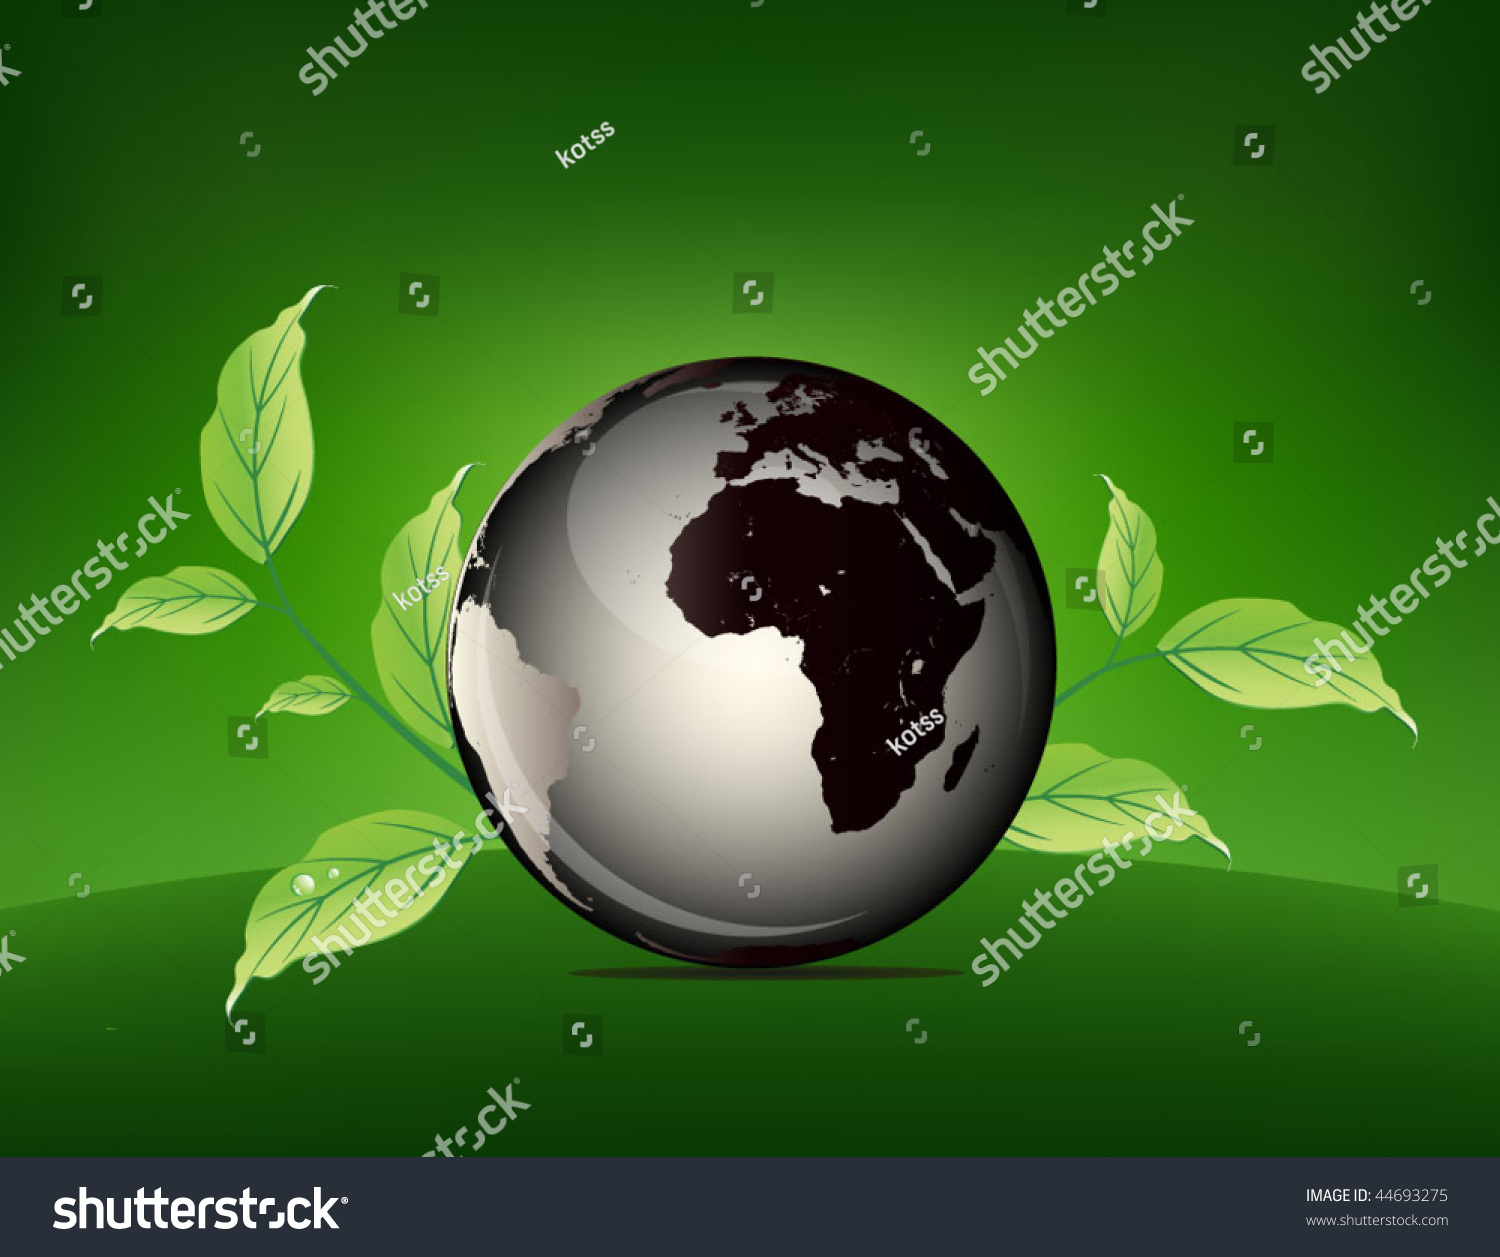 Green World - Globe Ecology Poster Stock Vector ...